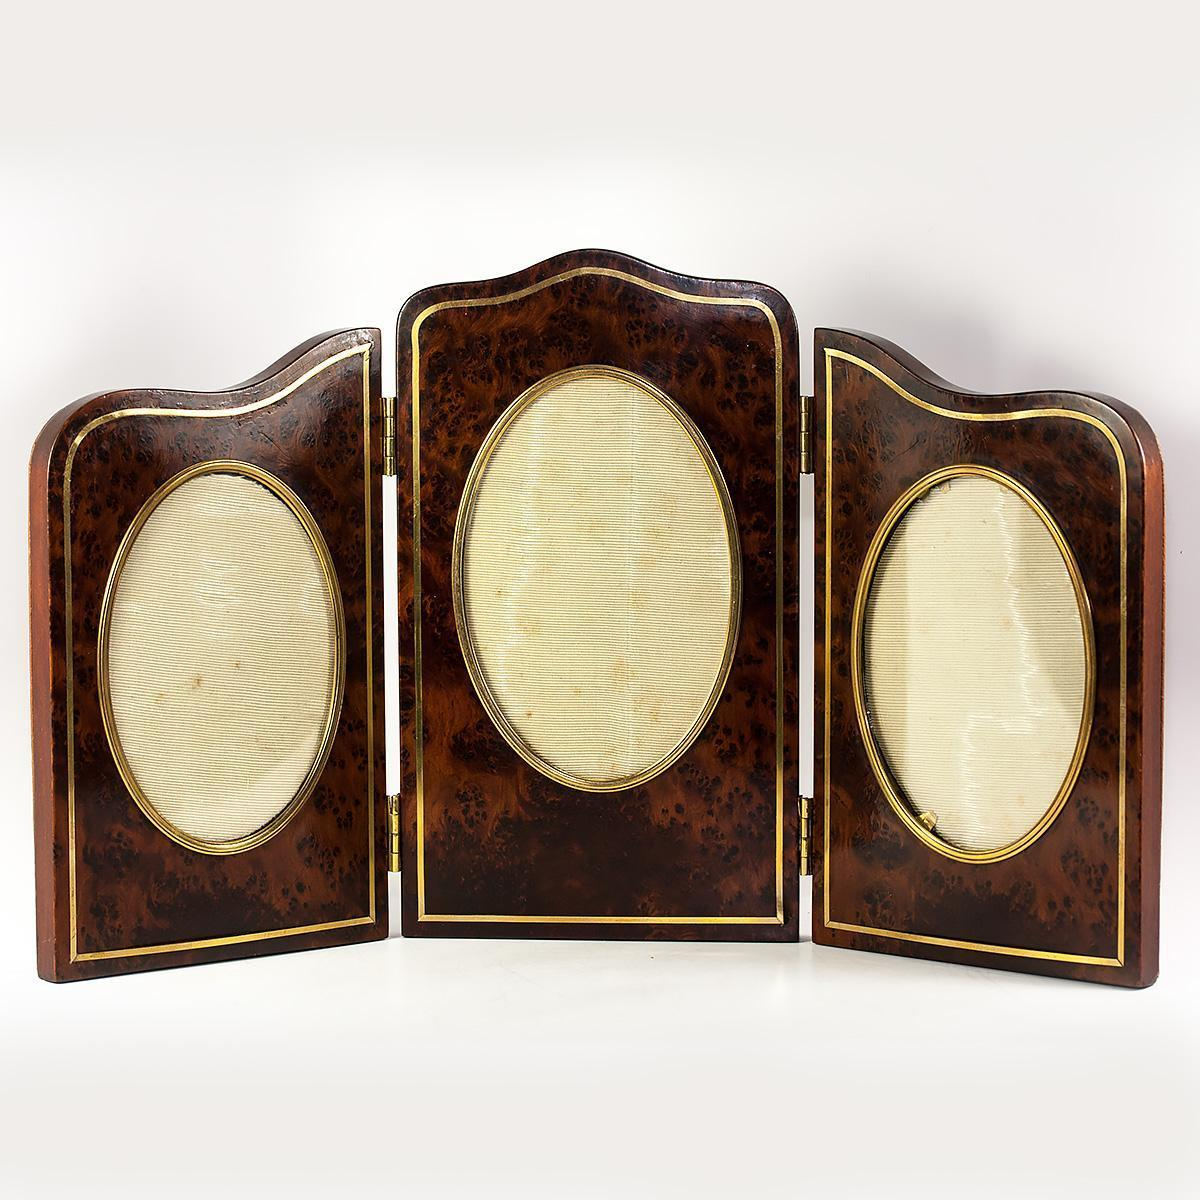 "Antique French Triple Photo Frame, Wood and Leather, 15.75"" x 8.75"" Folding Screen Like"